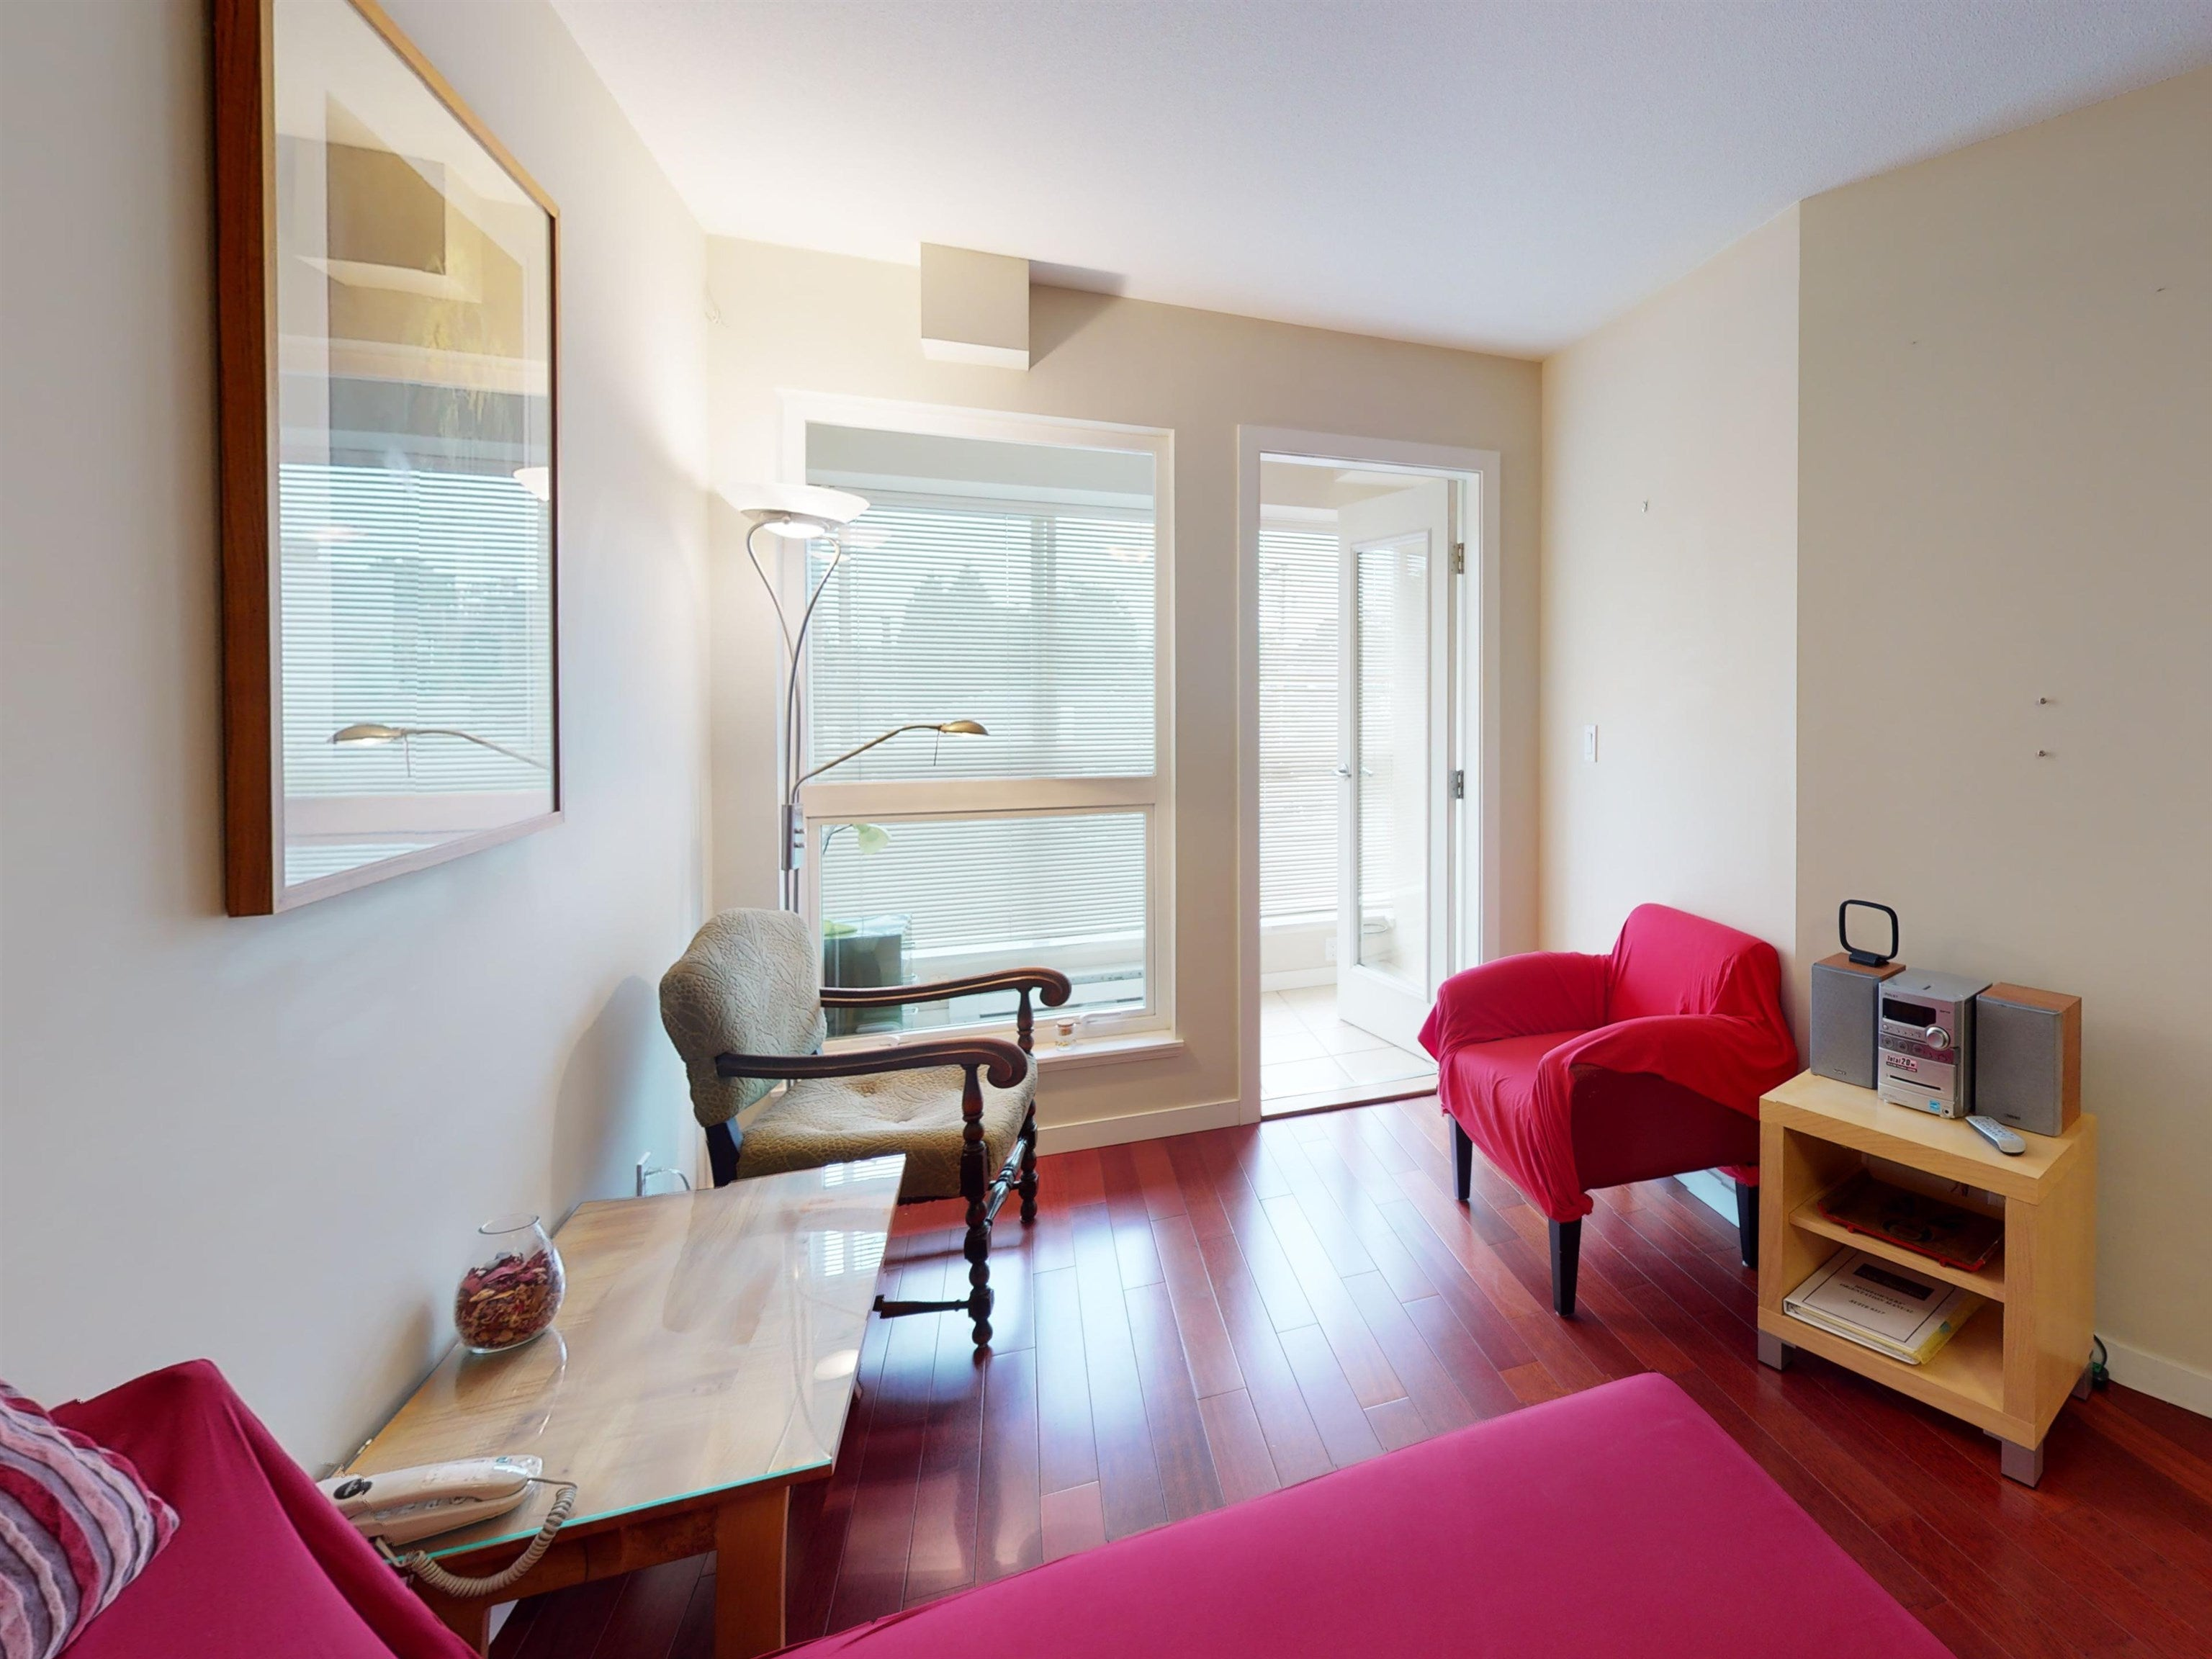 317 2891 E HASTINGS STREET - Hastings Apartment/Condo for sale, 1 Bedroom (R2615463) - #4